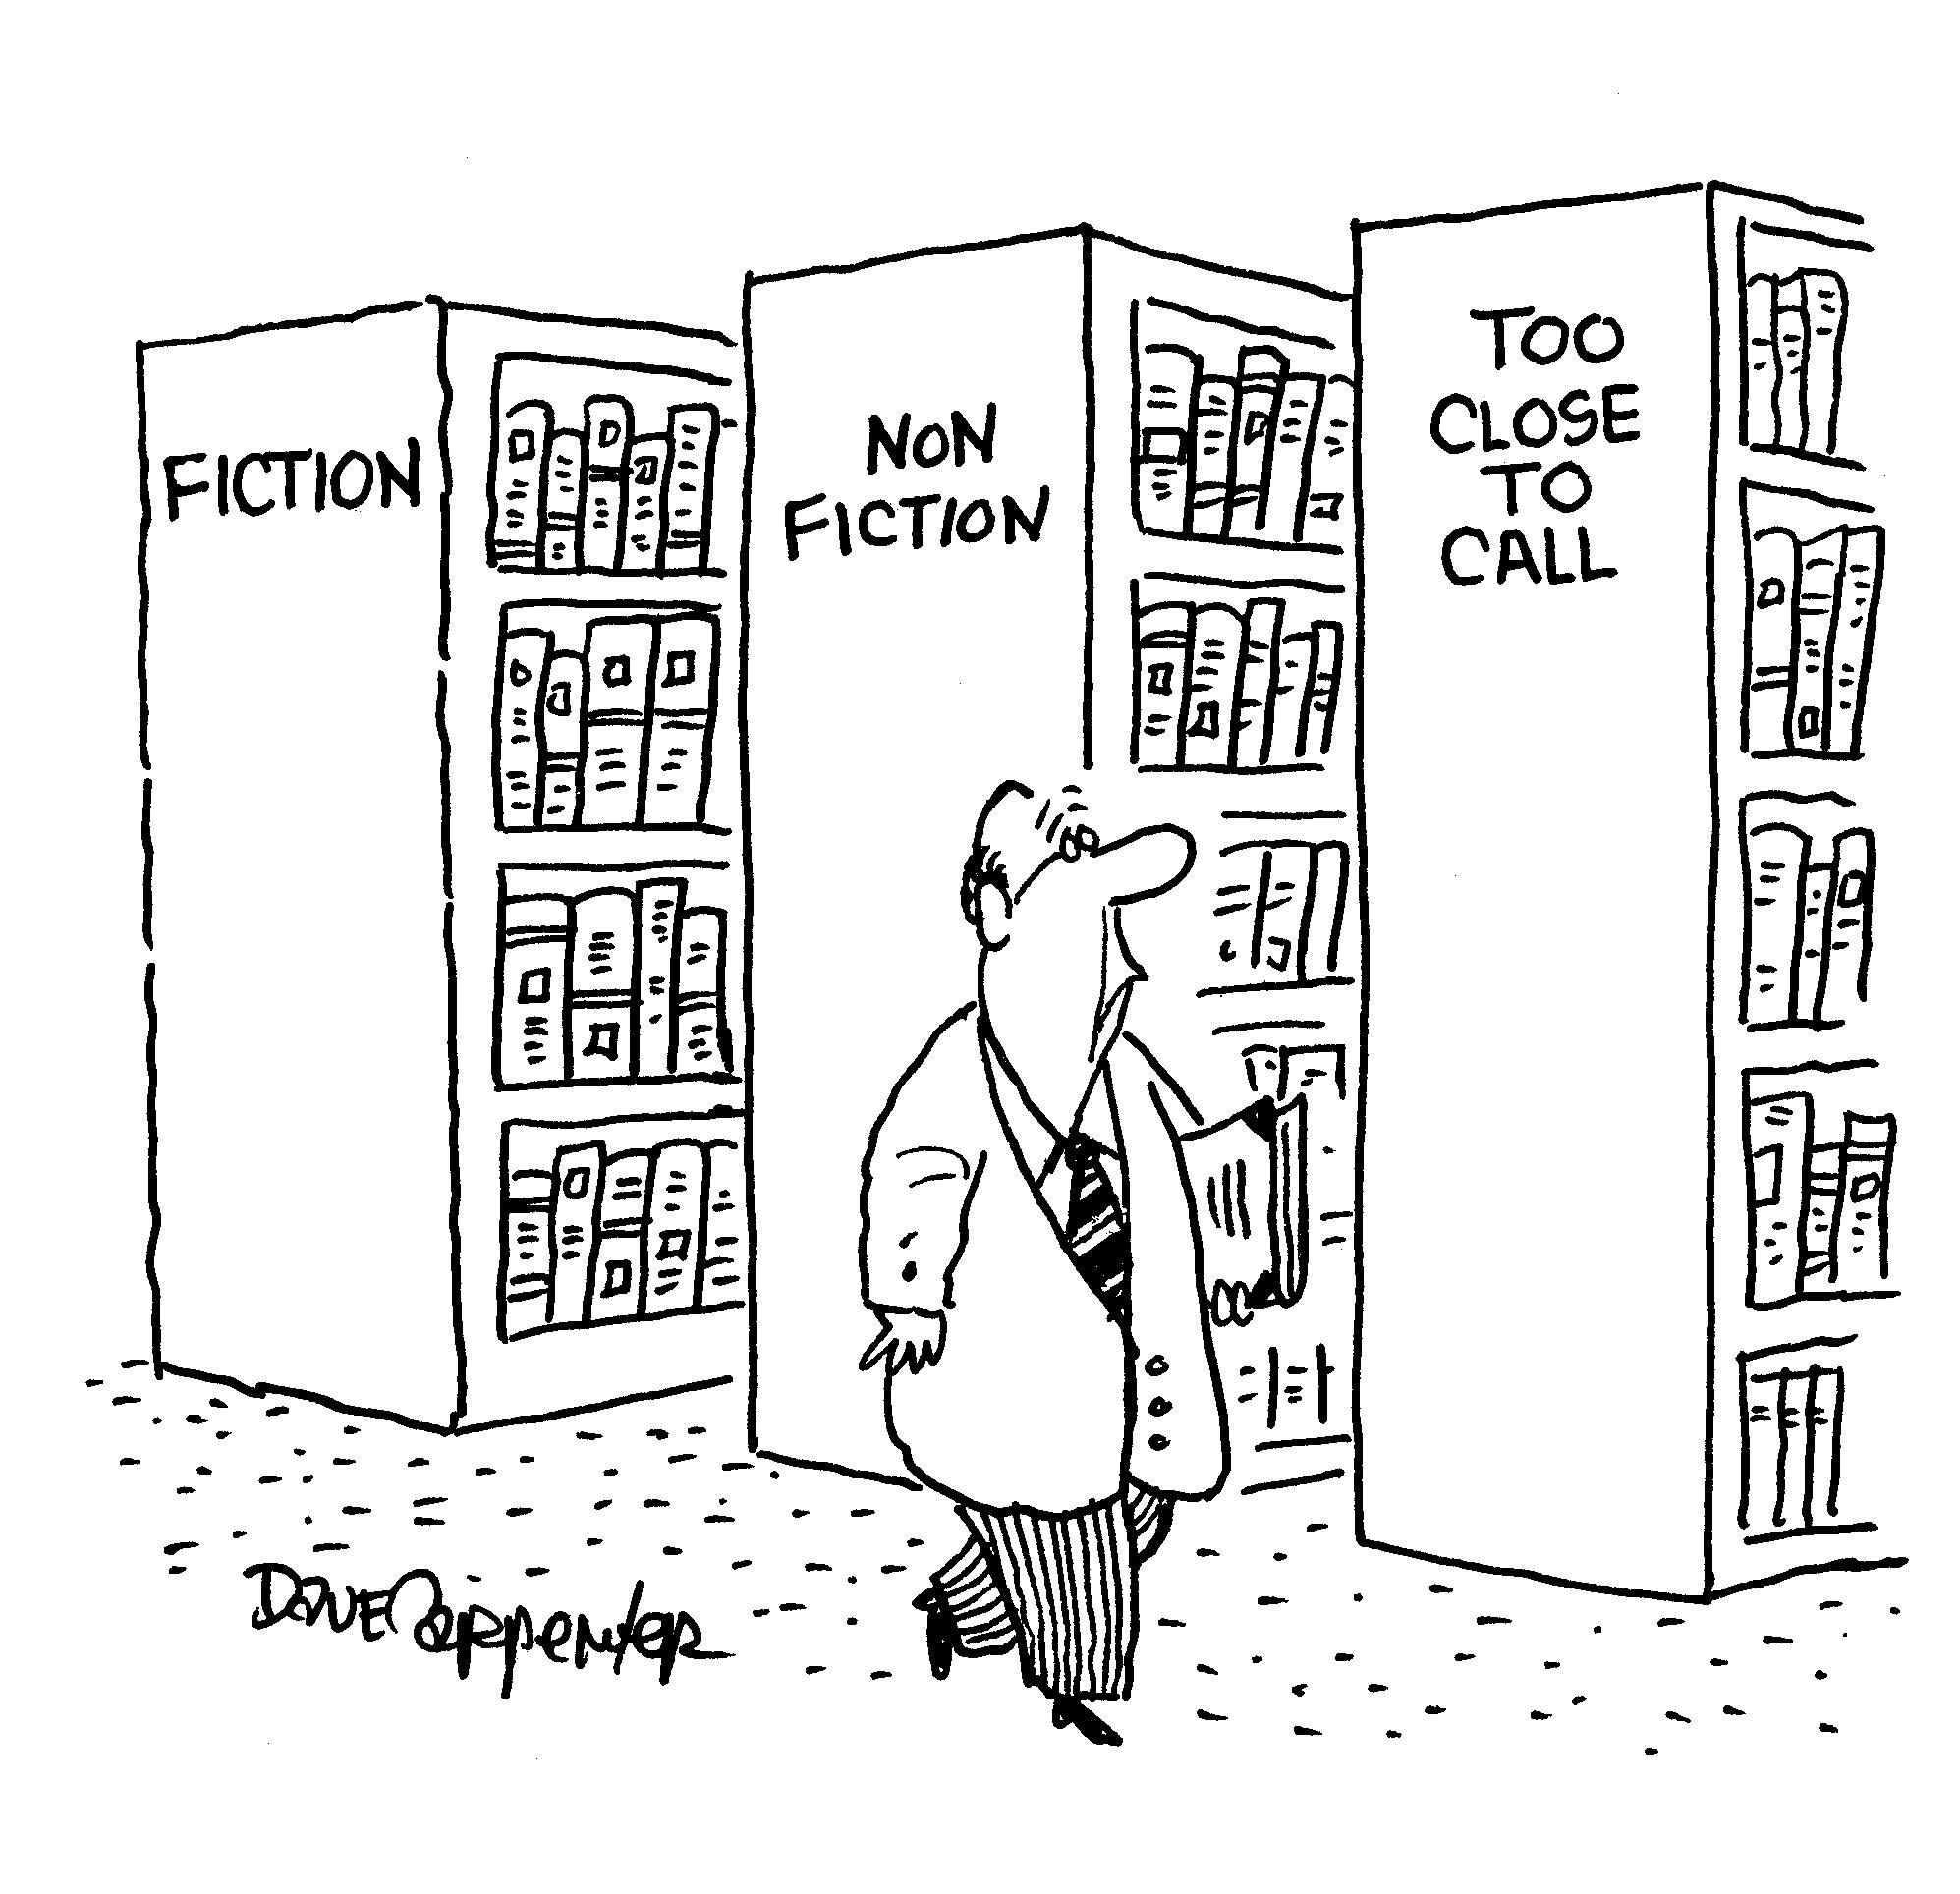 Of Fiction and Non-Fiction